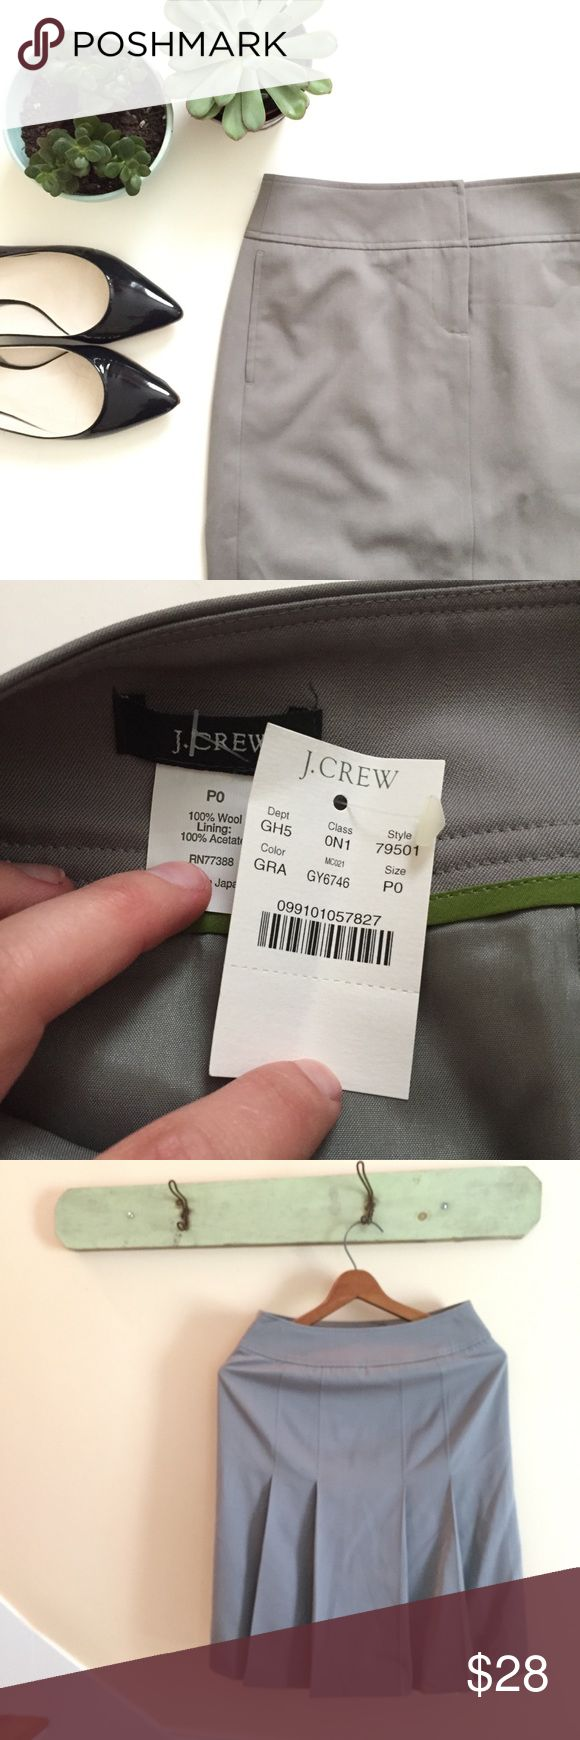 🆕{Listing} J.Crew Gray Pencil Skirt J.Crew Factory gray pencil skirt. Zip up in front, pleated in the back. A great skirt for work attire. Brand new with tags. J. Crew Skirts Pencil